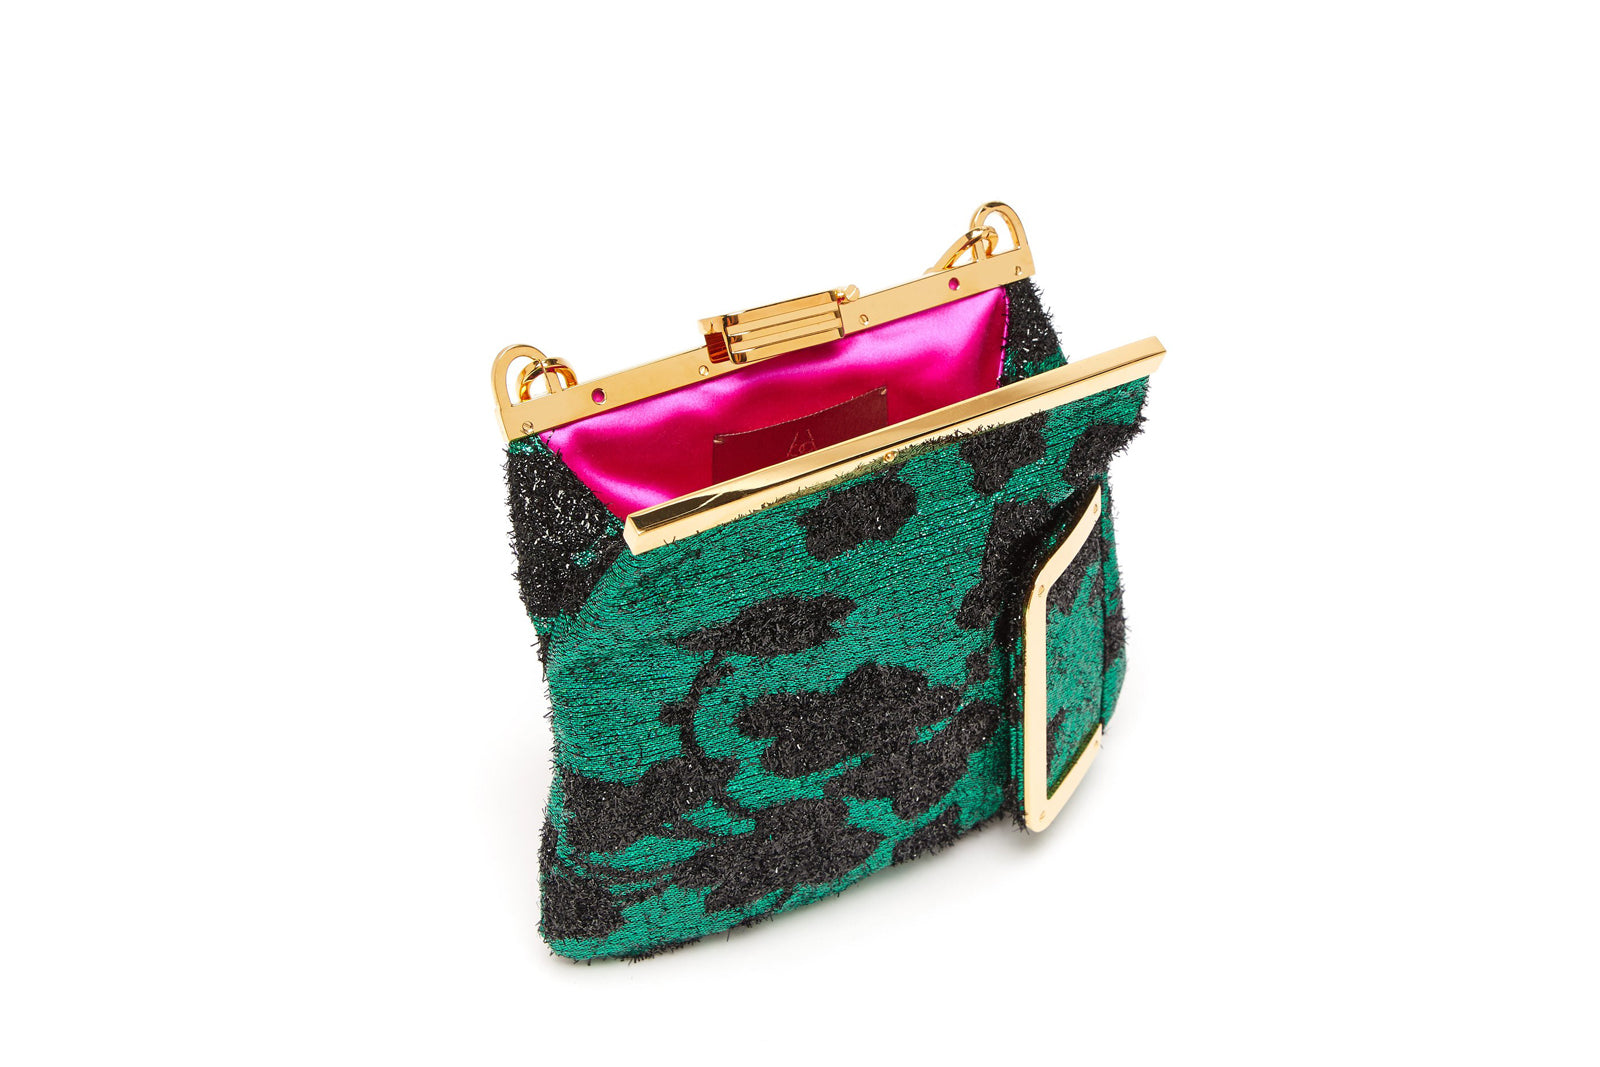 5M Clutch in Green Cherry Blossom Metallic Lurex with 24K Gold Dipped Hardware